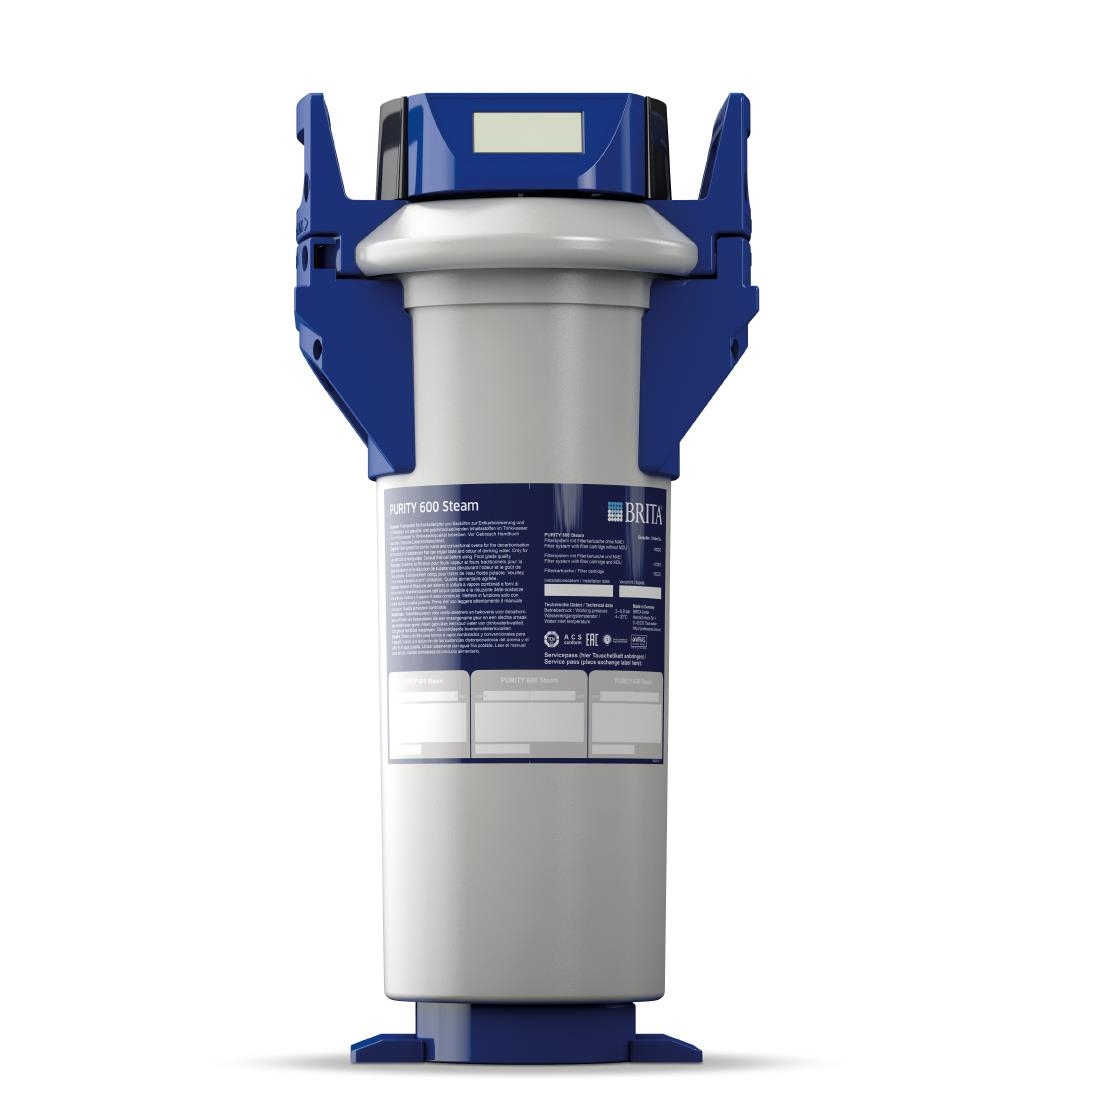 Image of Brita Purity Steam 600 Water Filter System